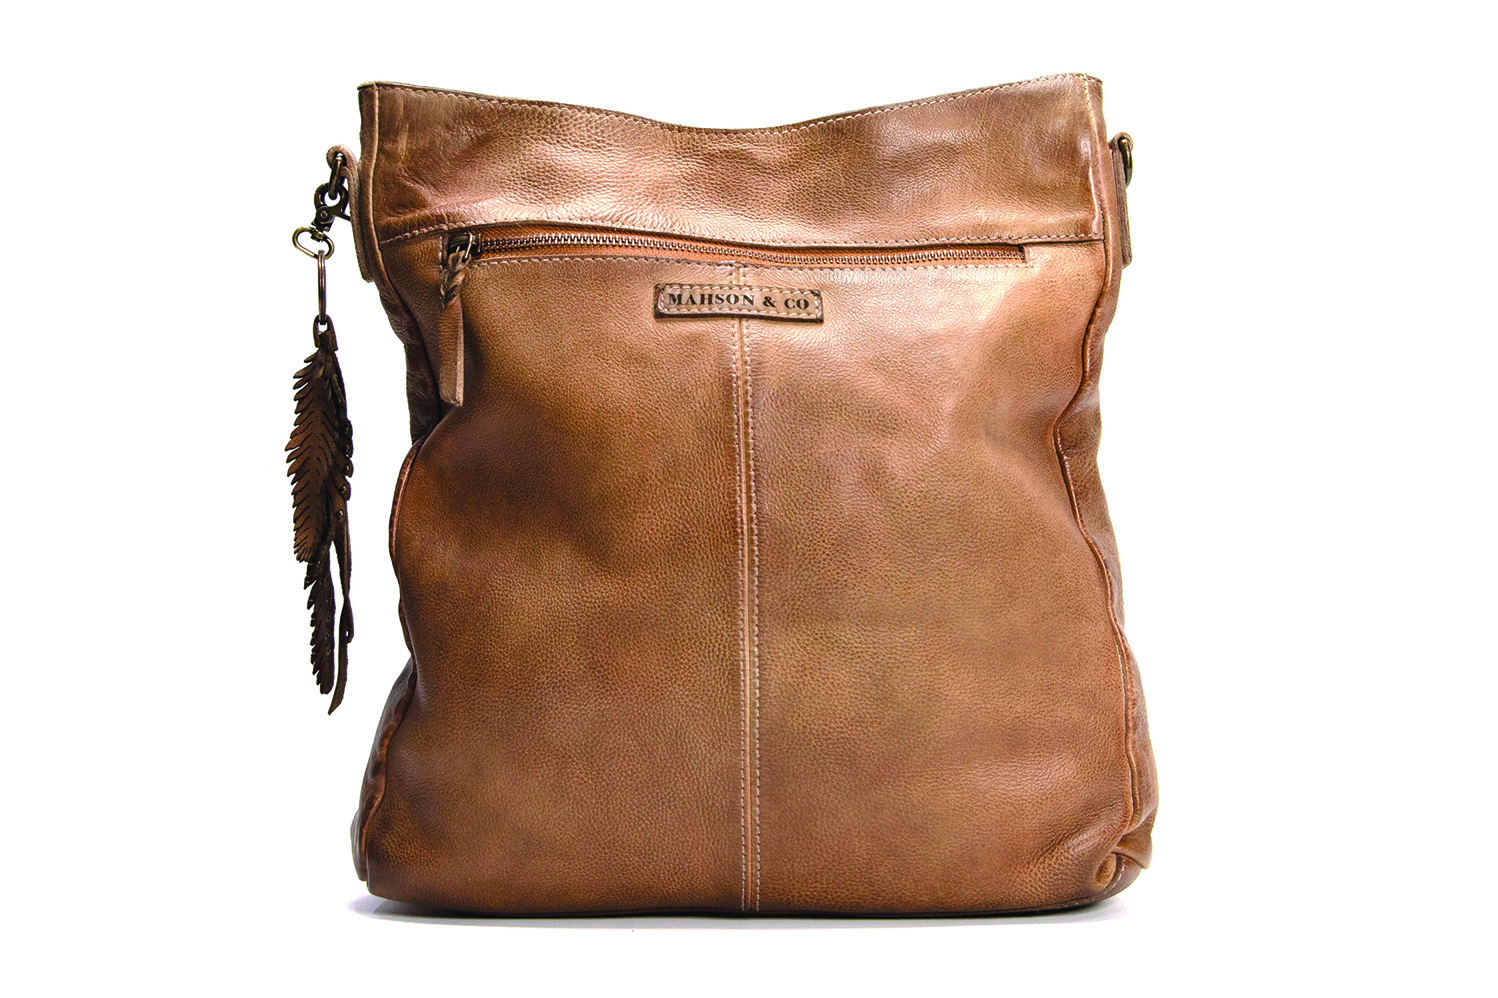 Vintage, retro and boho inspired genuine leather handbags